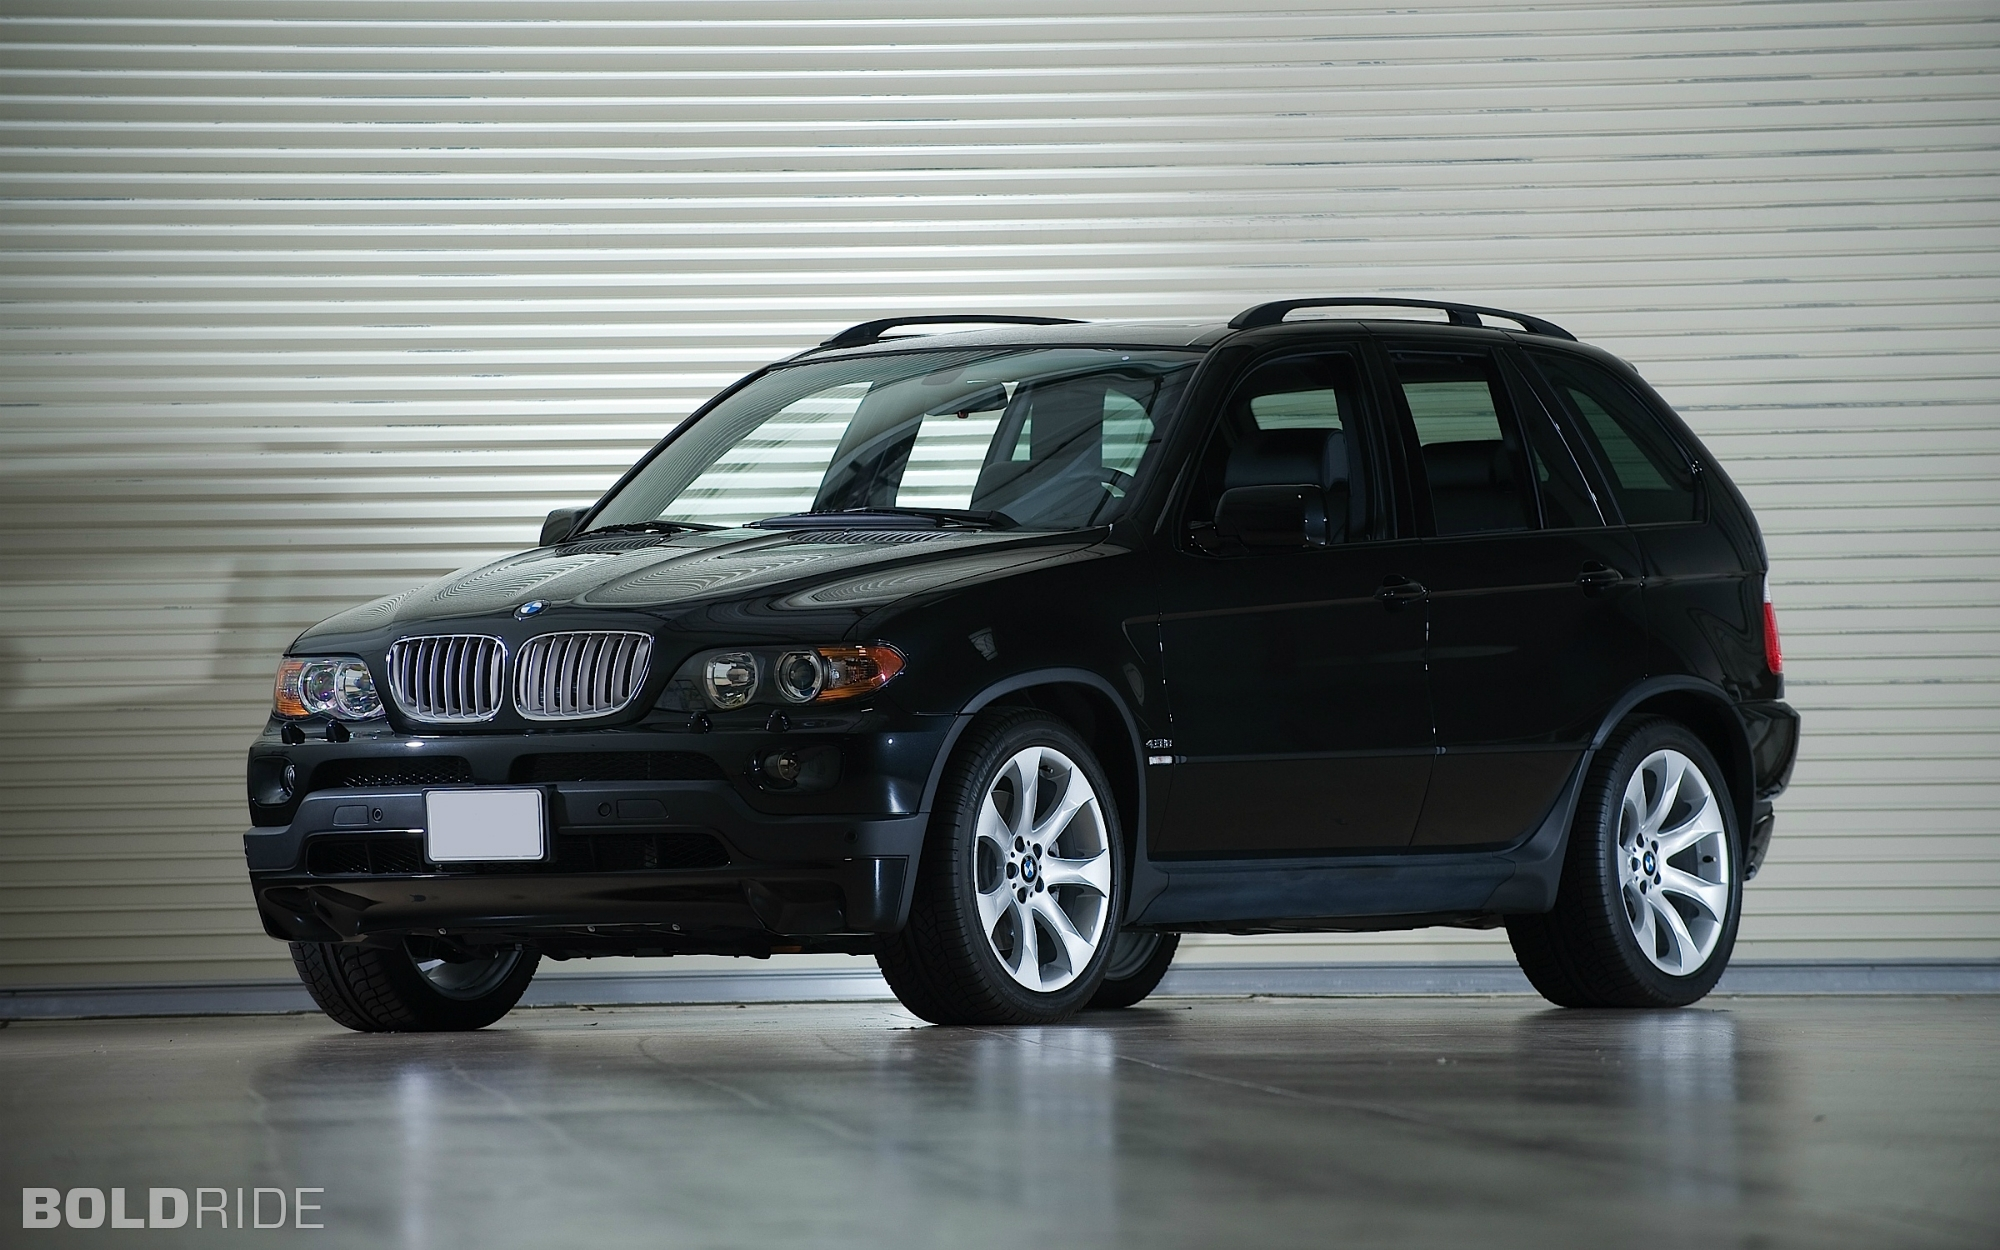 2005 bmw x5 image 25. Black Bedroom Furniture Sets. Home Design Ideas